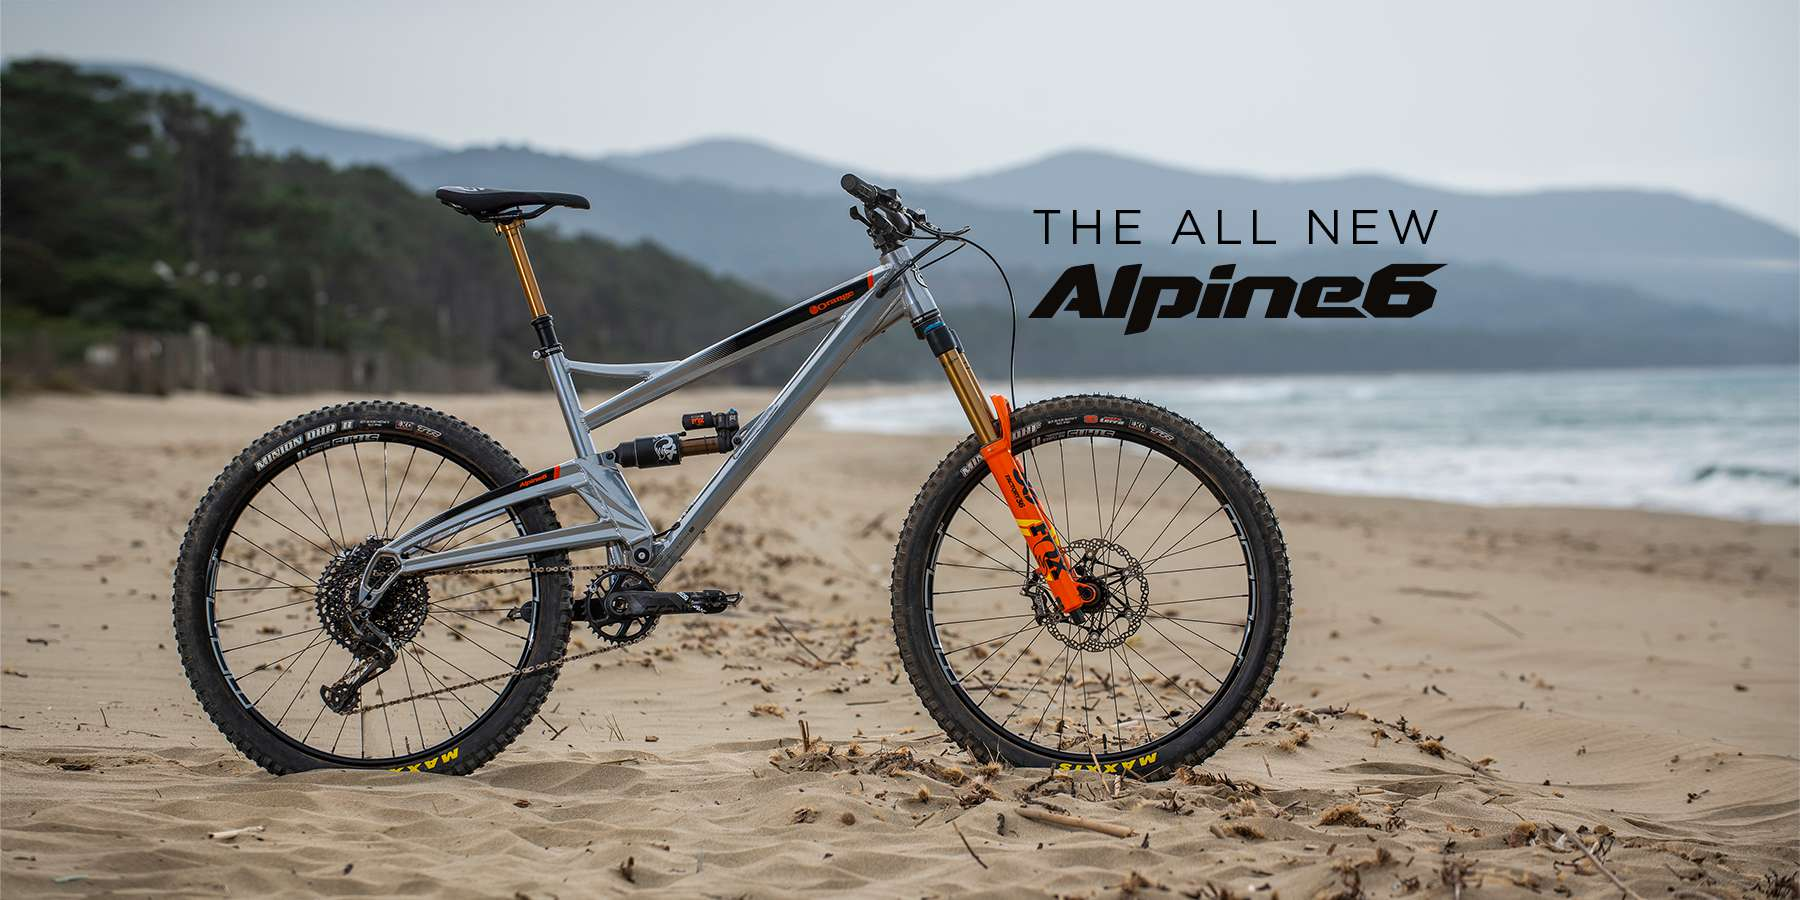 The all new Alpine 6